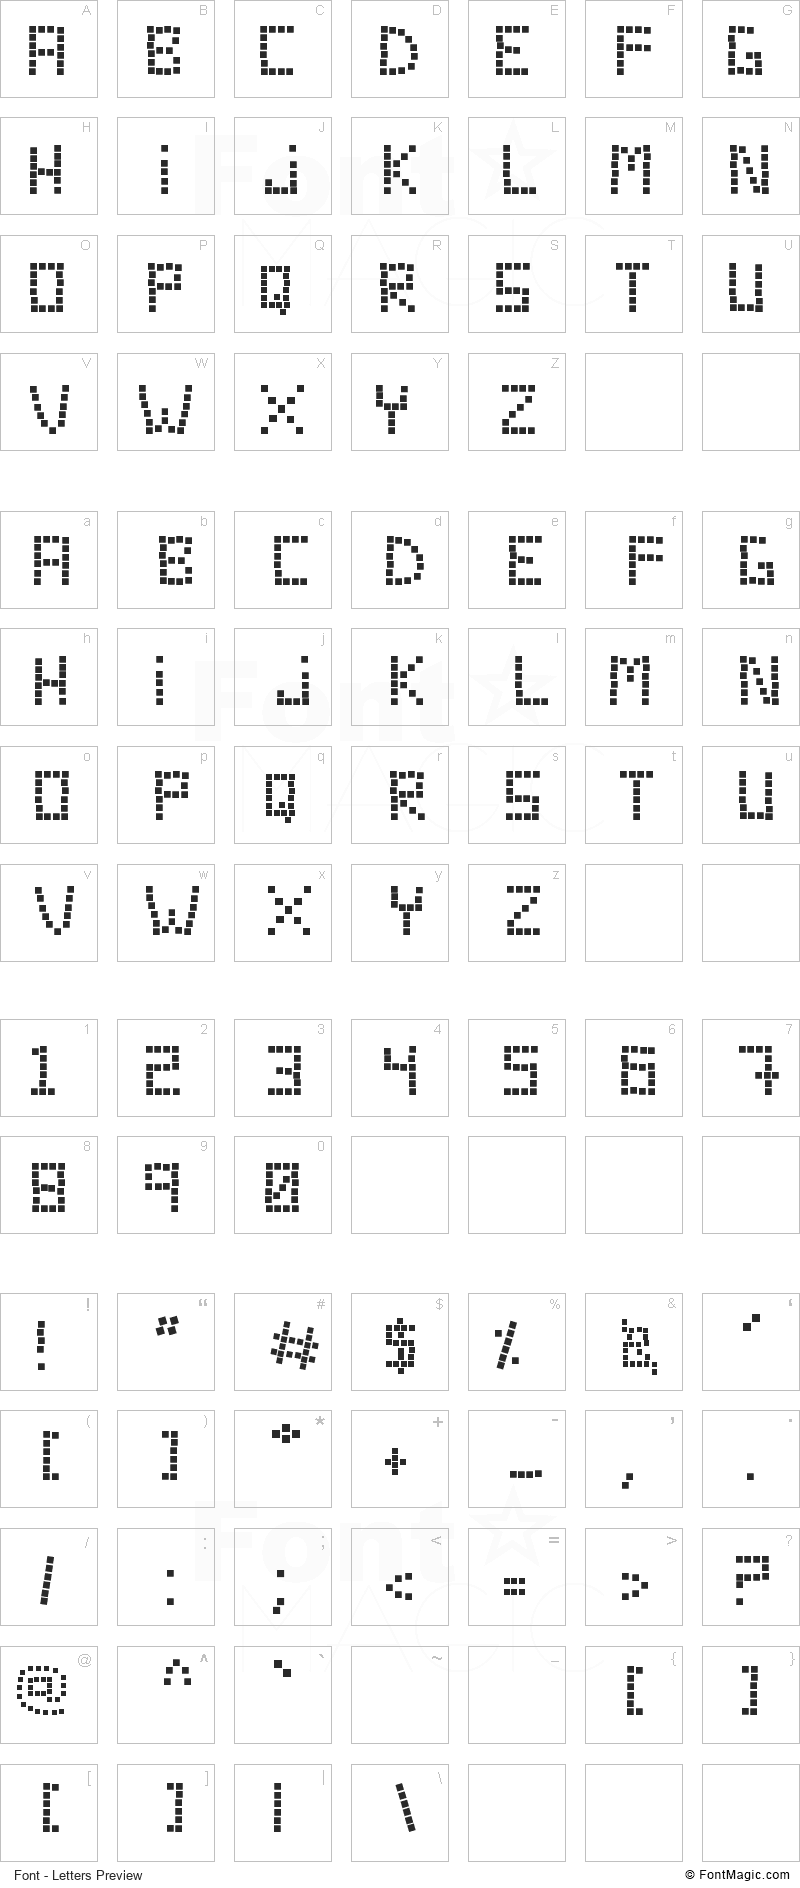 Tecno Chaos Font - All Latters Preview Chart